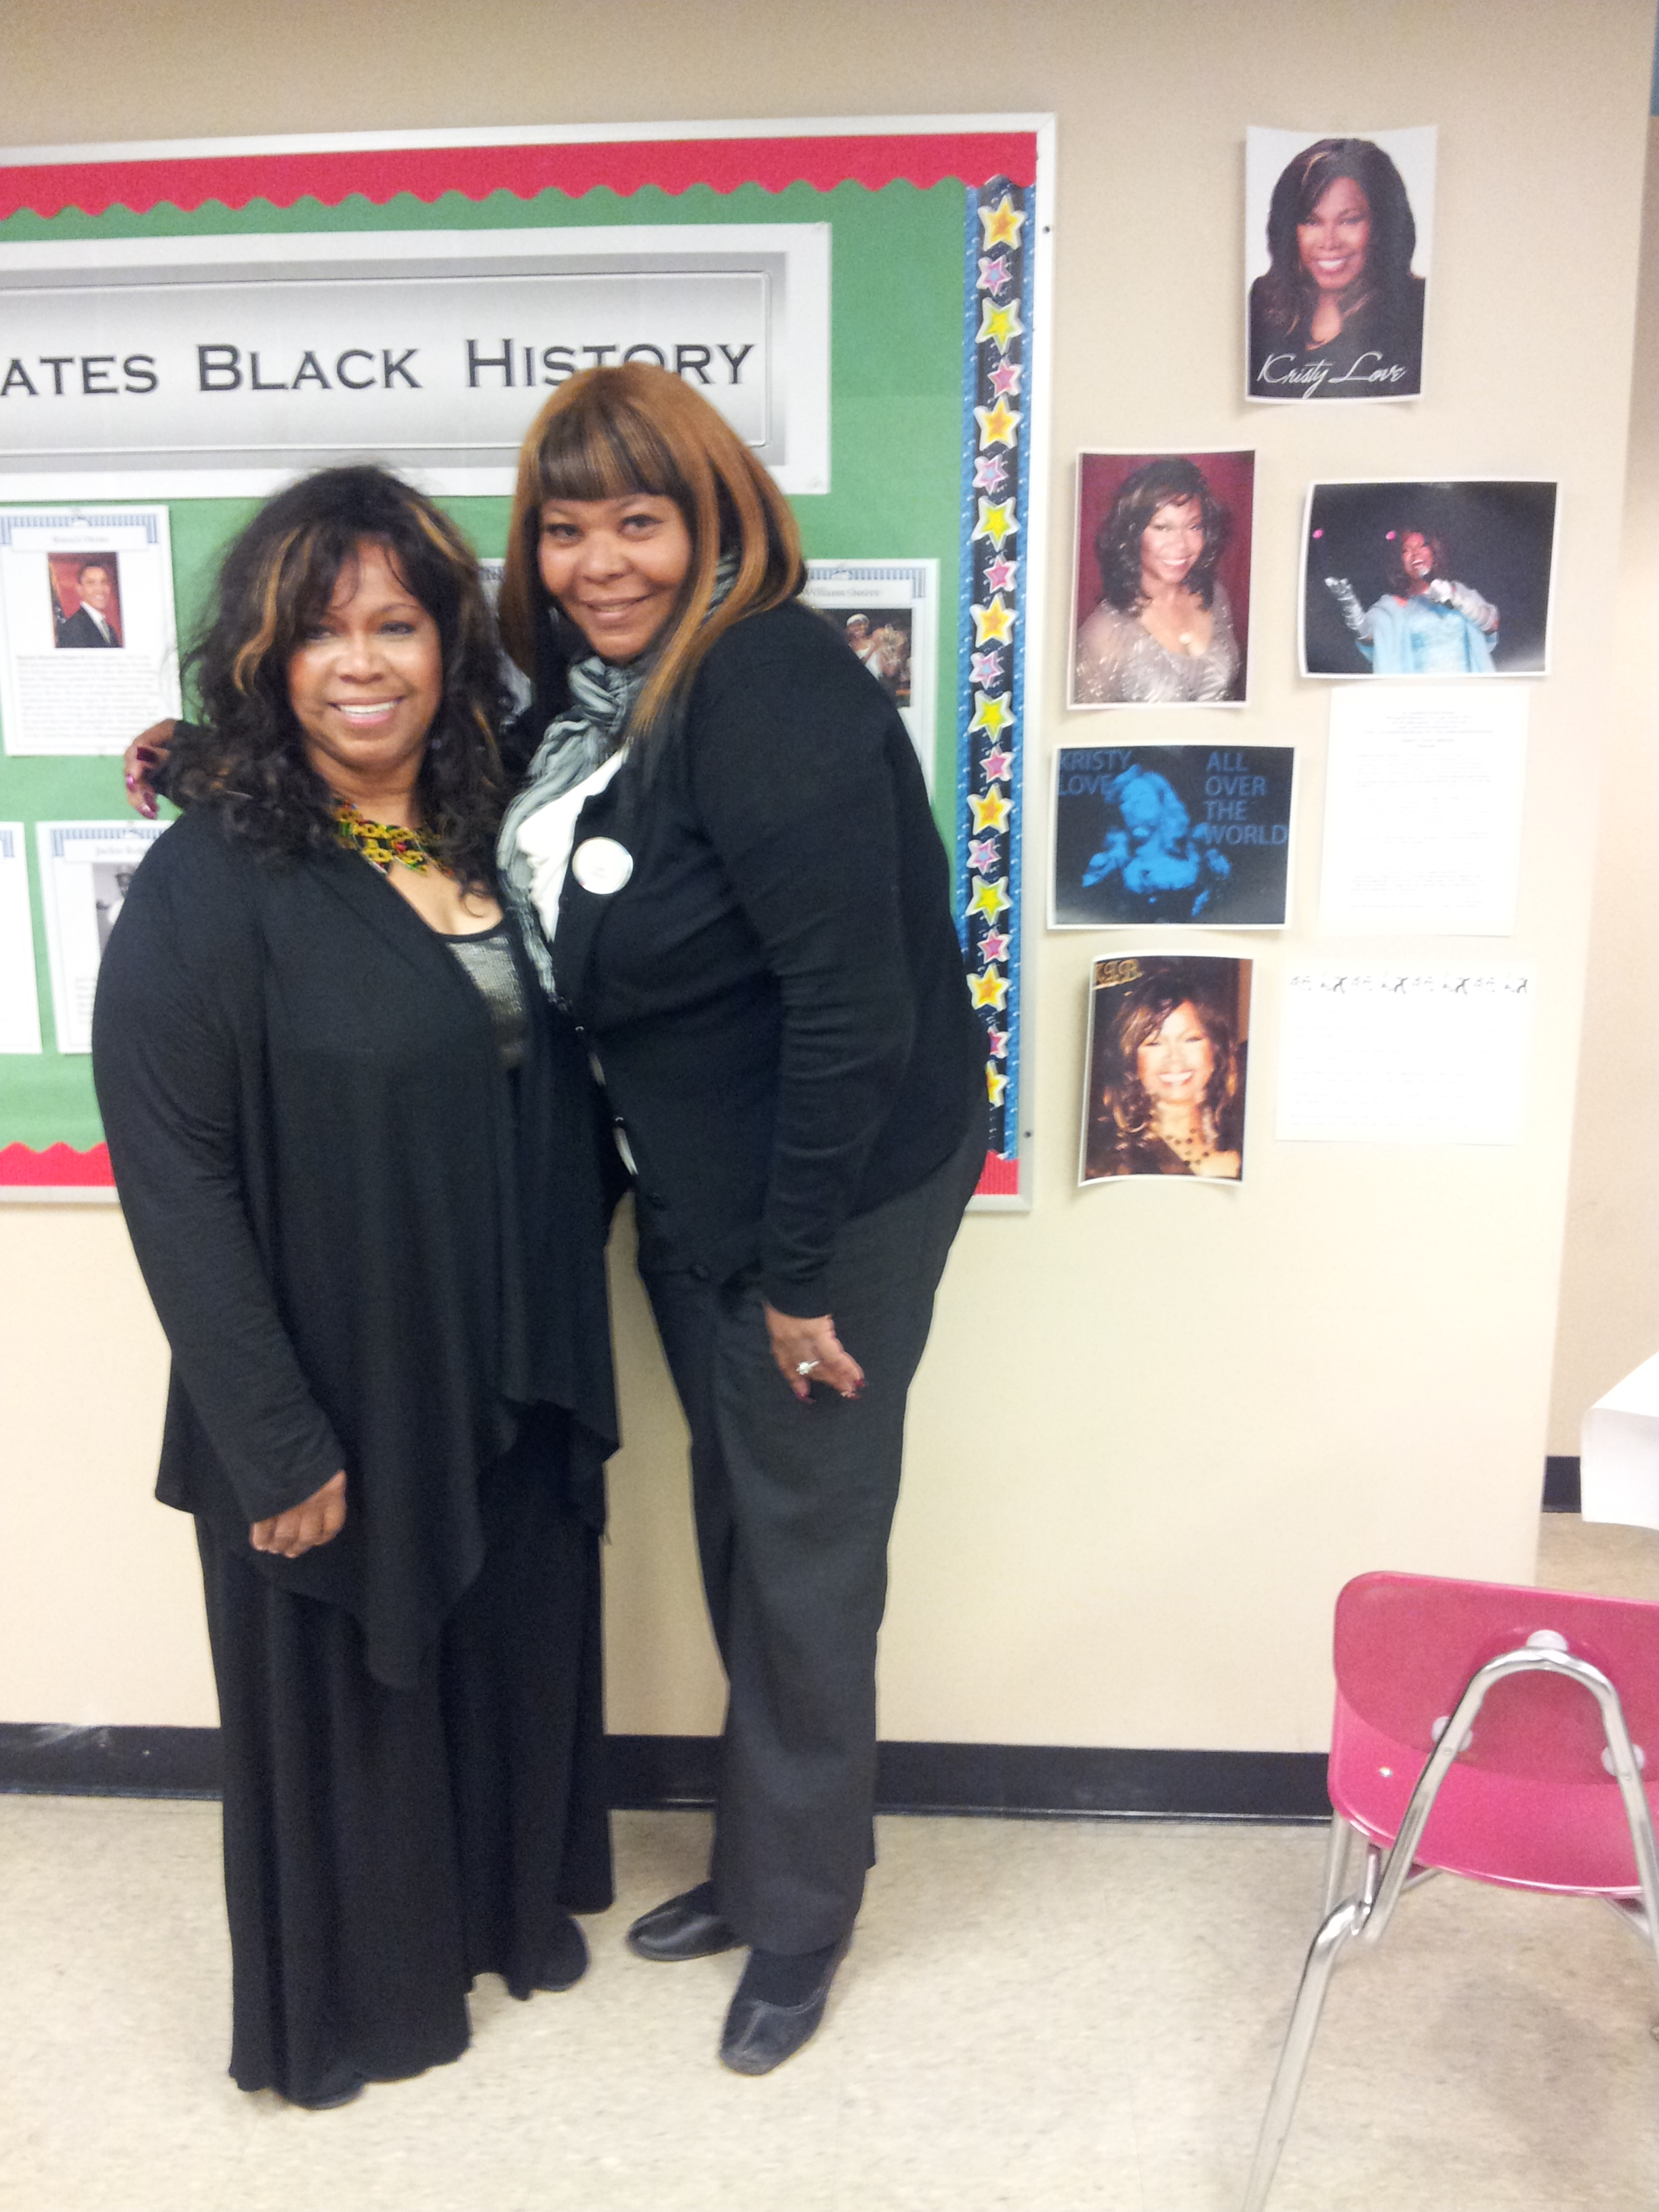 7 Kristy celebrated at Black History